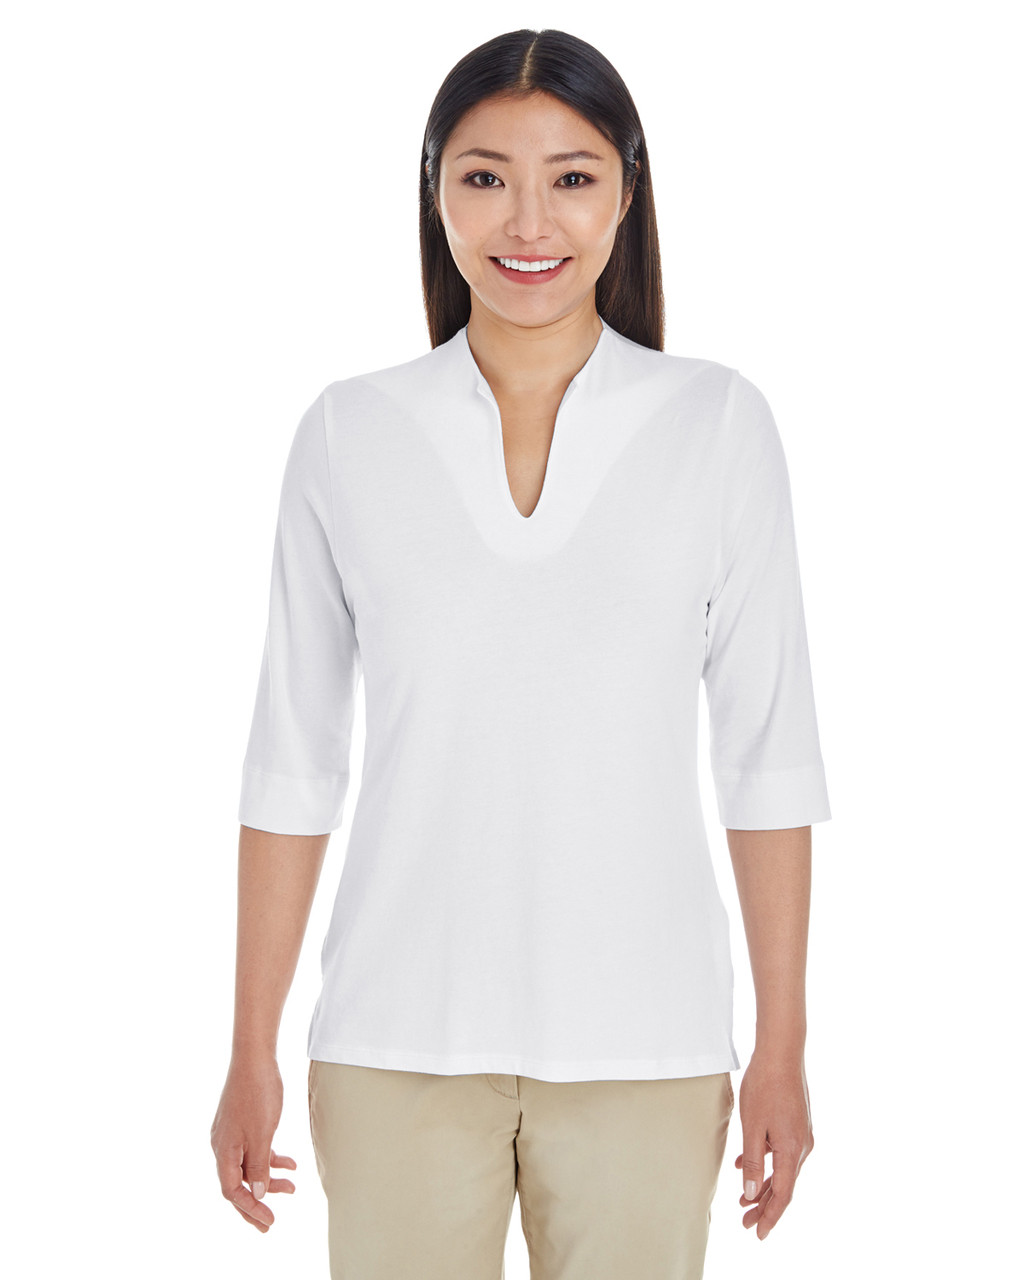 White - DP188W Devon & Jones Ladies' Perfect Fit™ Tailored Open Neckline Top